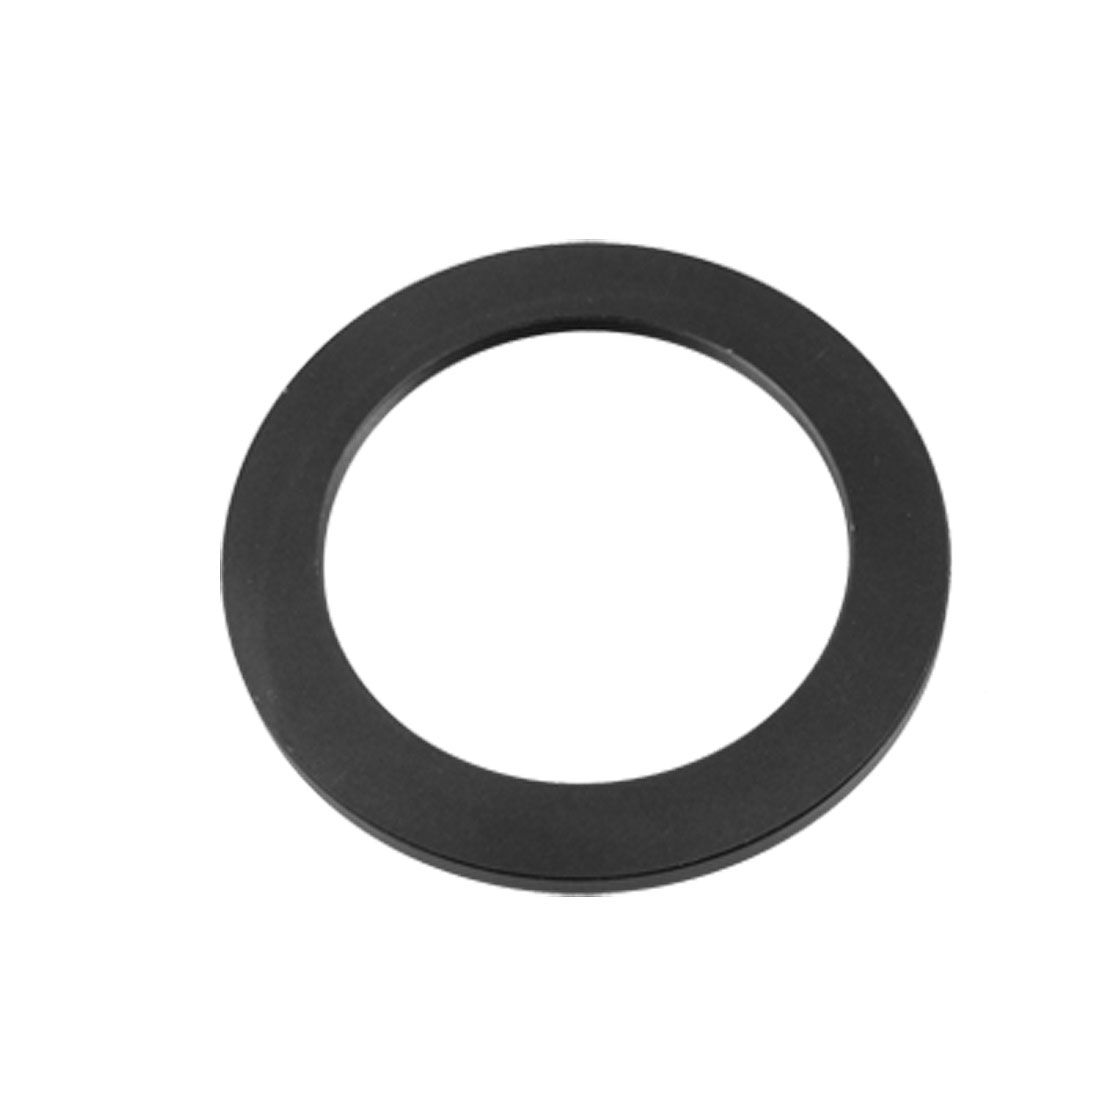 77-58mm Camera Lens Filter Step Down Ring Adapter